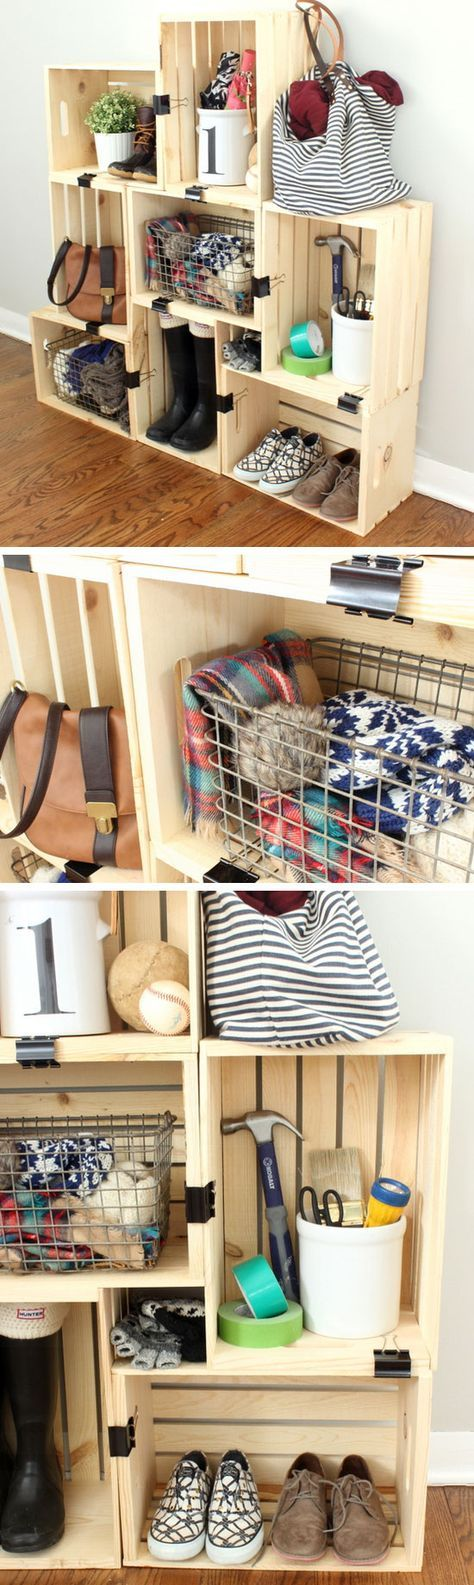 Decorating Small Apartments 25 small apartment decorating ideas on a budget   crate storage